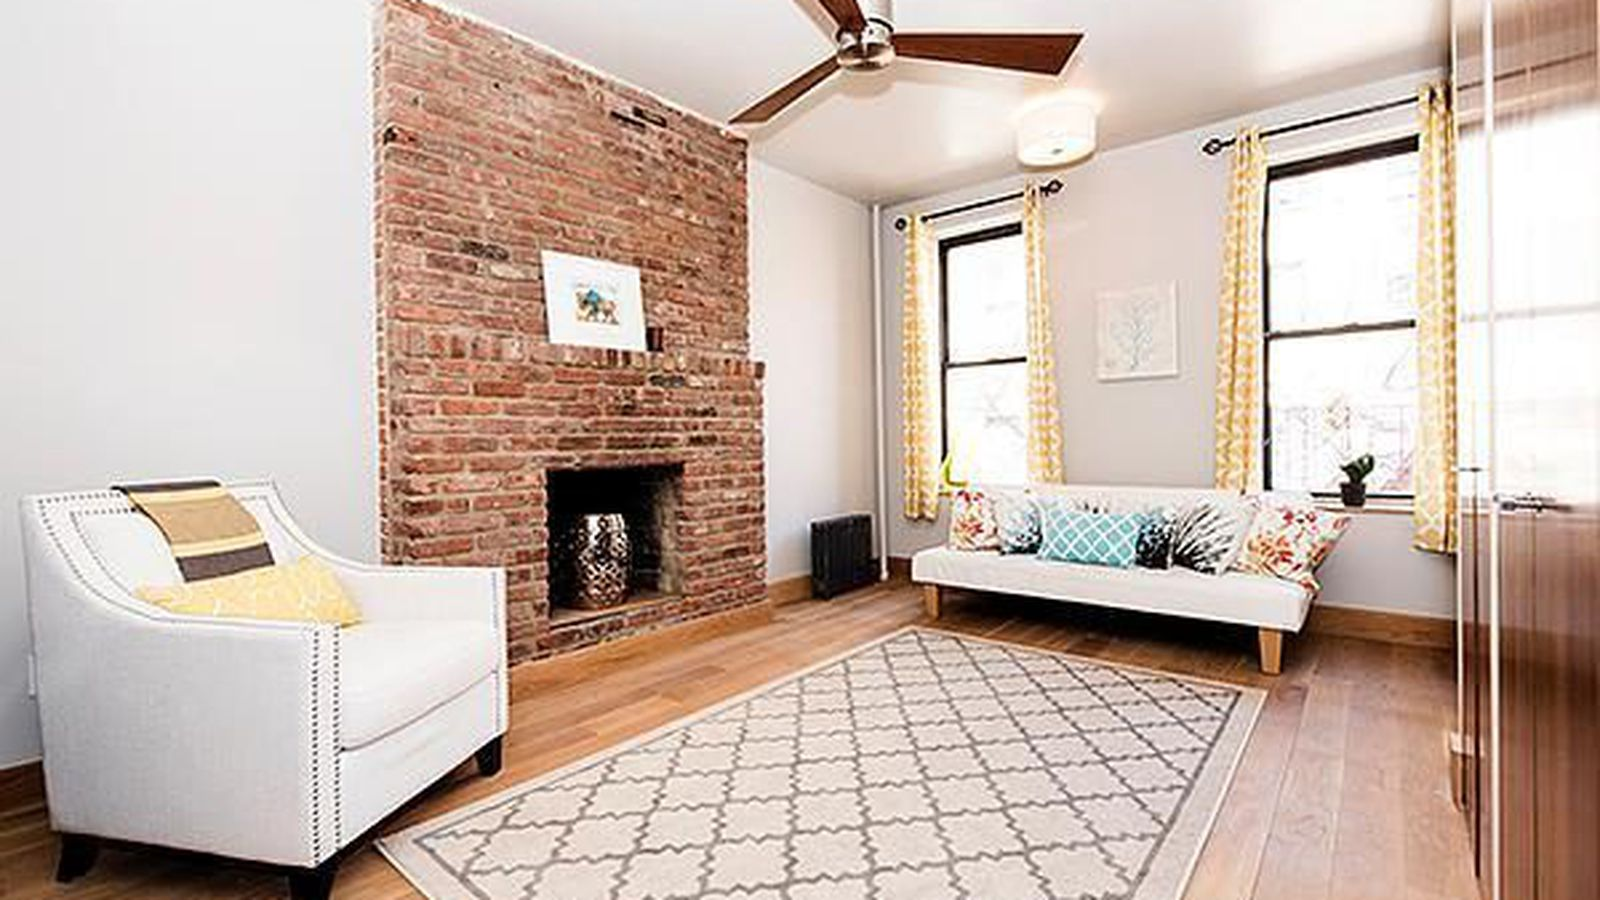 Half A Million For 250 Square Feet Of West Village Real